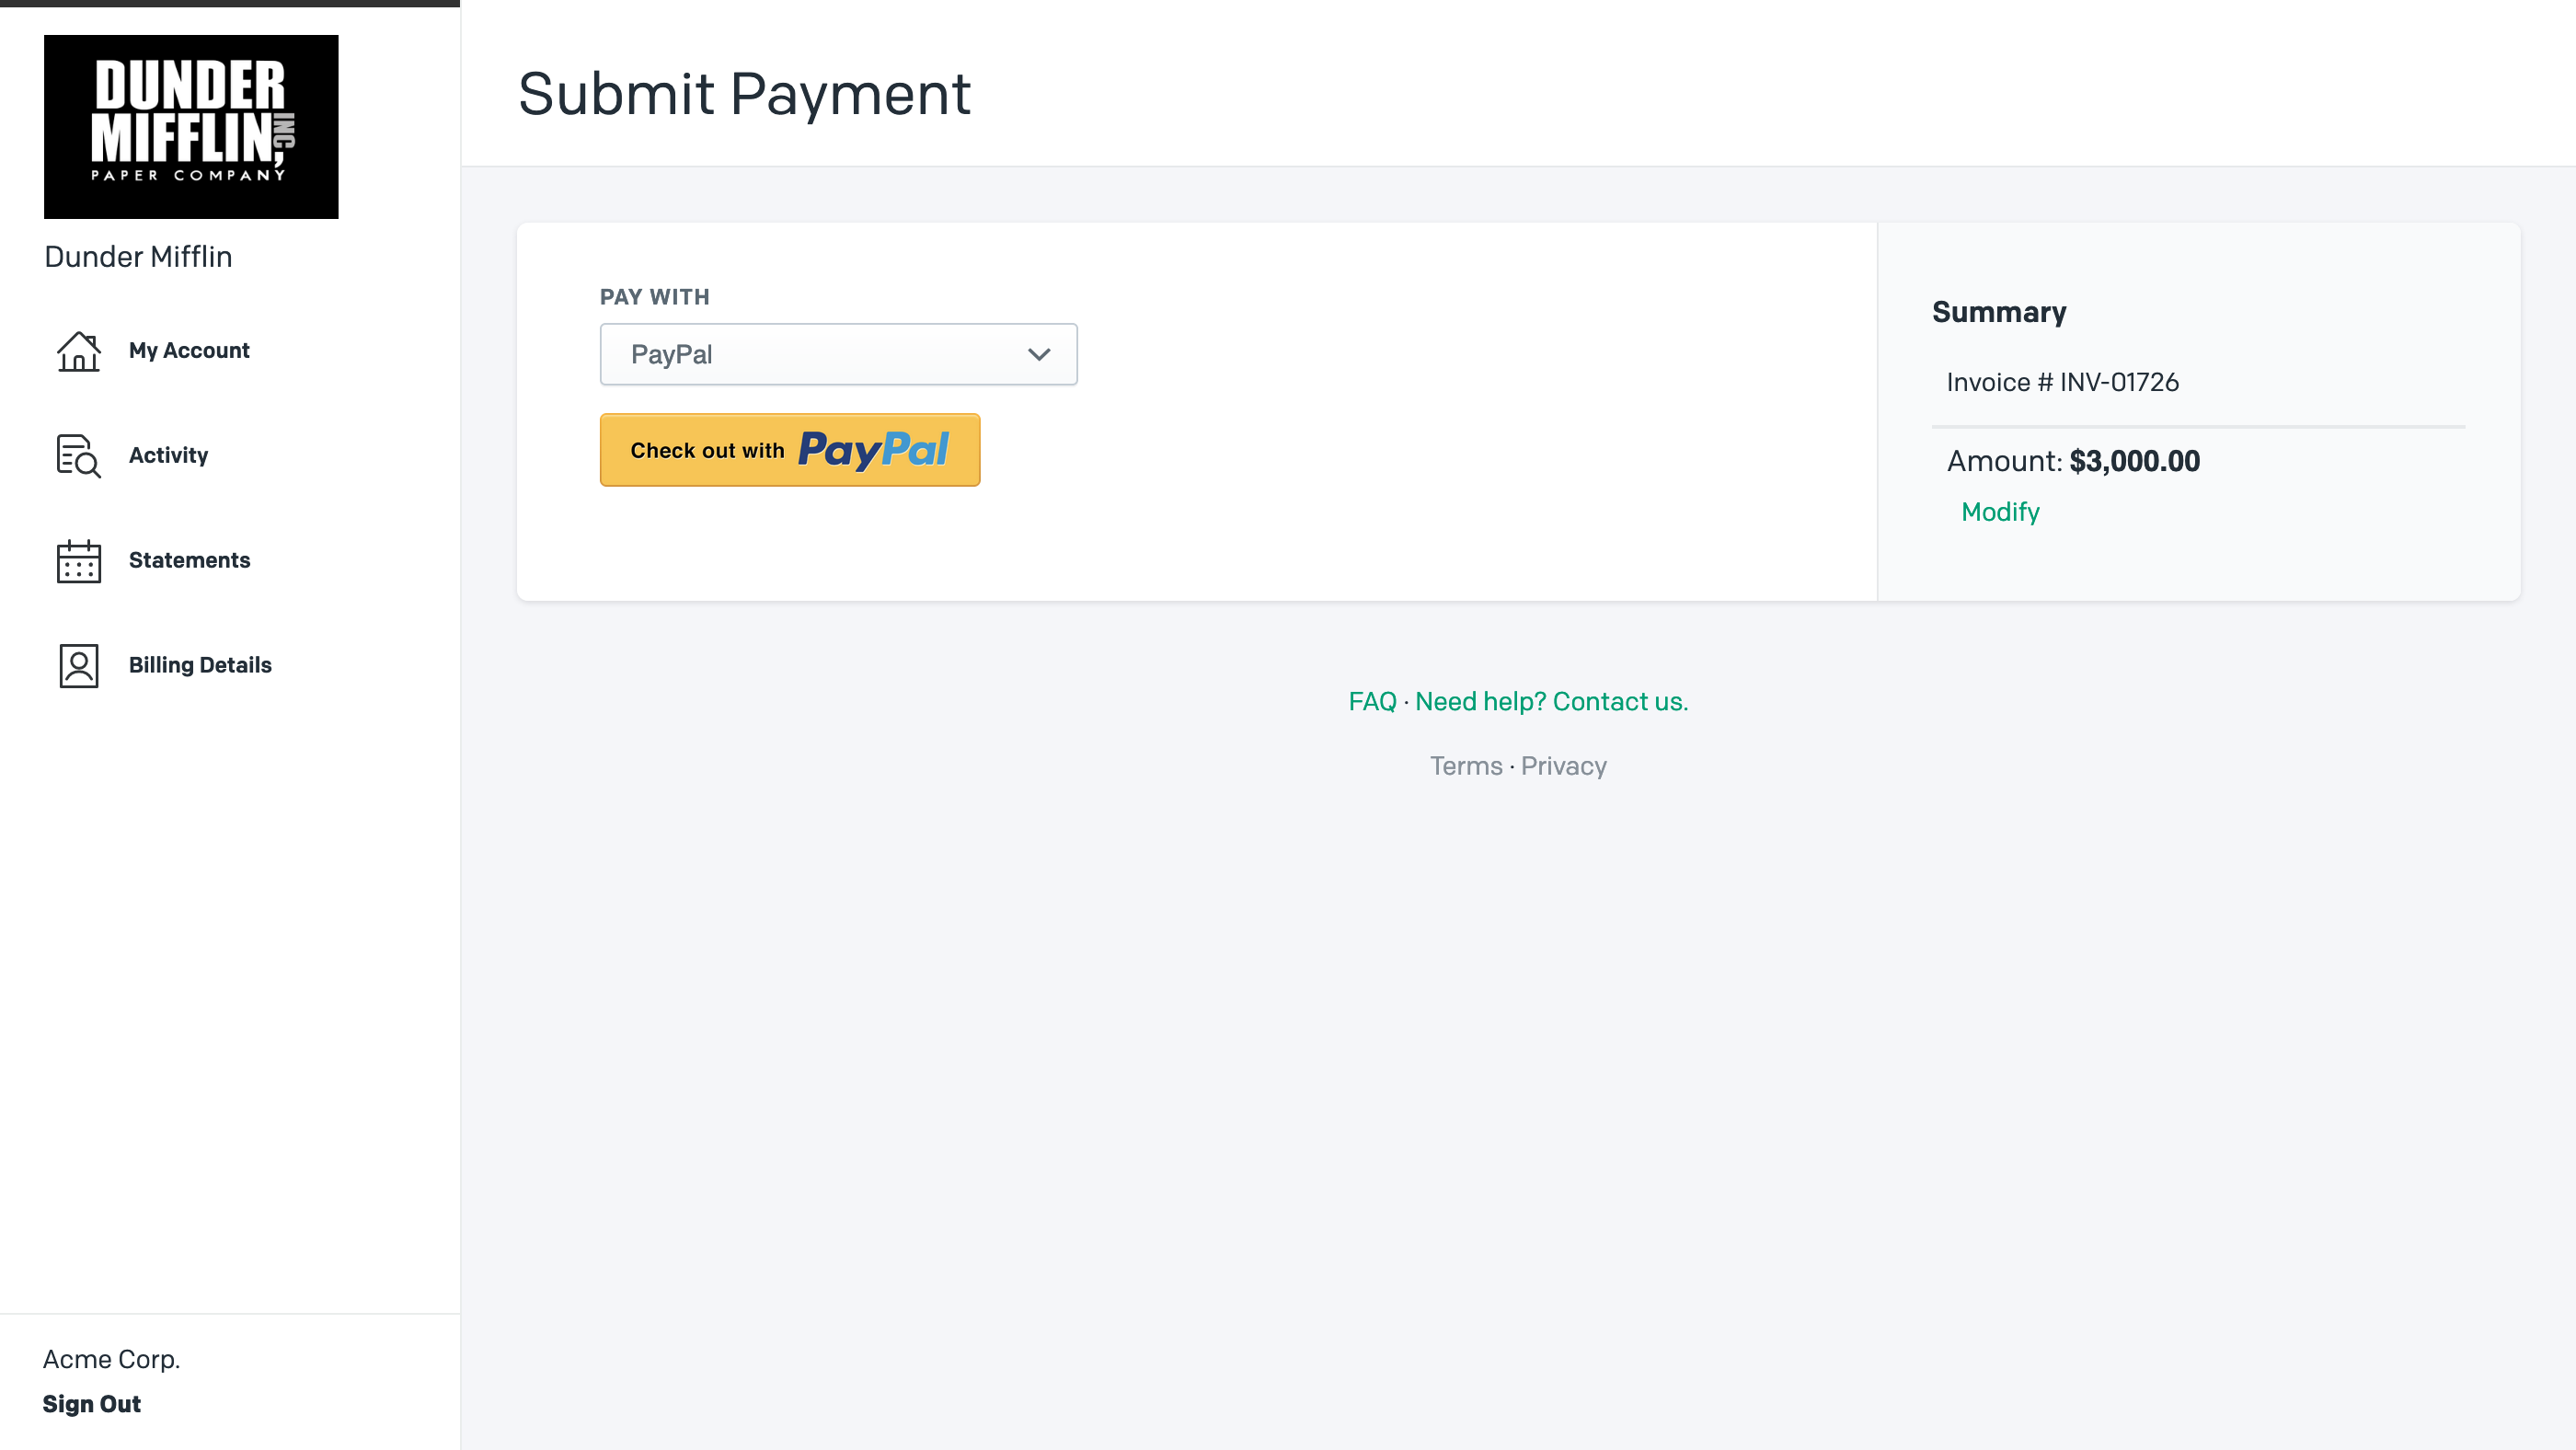 Pay Invoice with PayPal